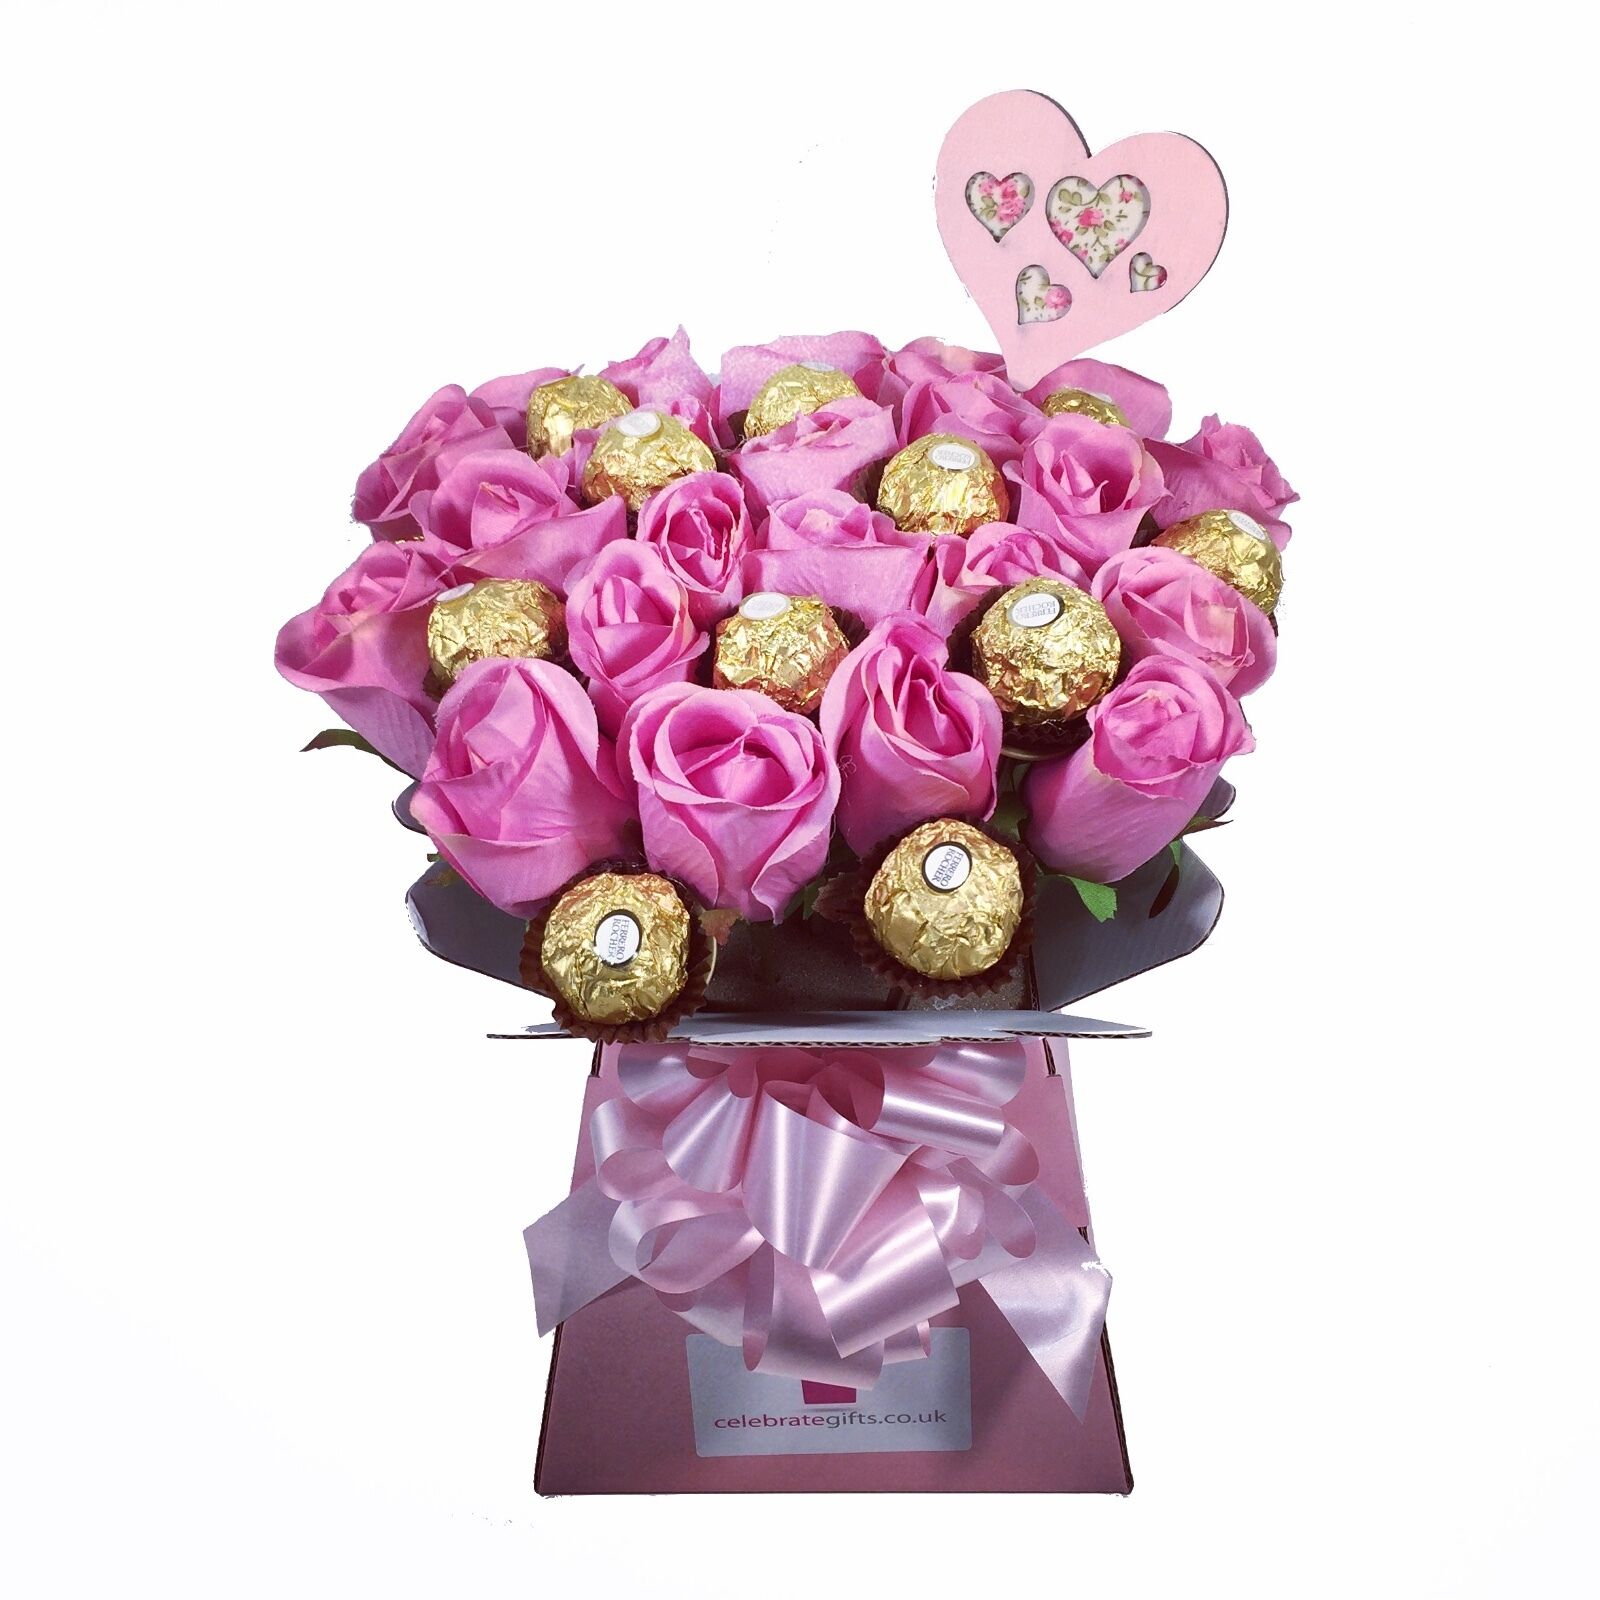 Luxury Ferrero Rocher/Lindt Lindor & Pink Silk Roses Chocolate ...